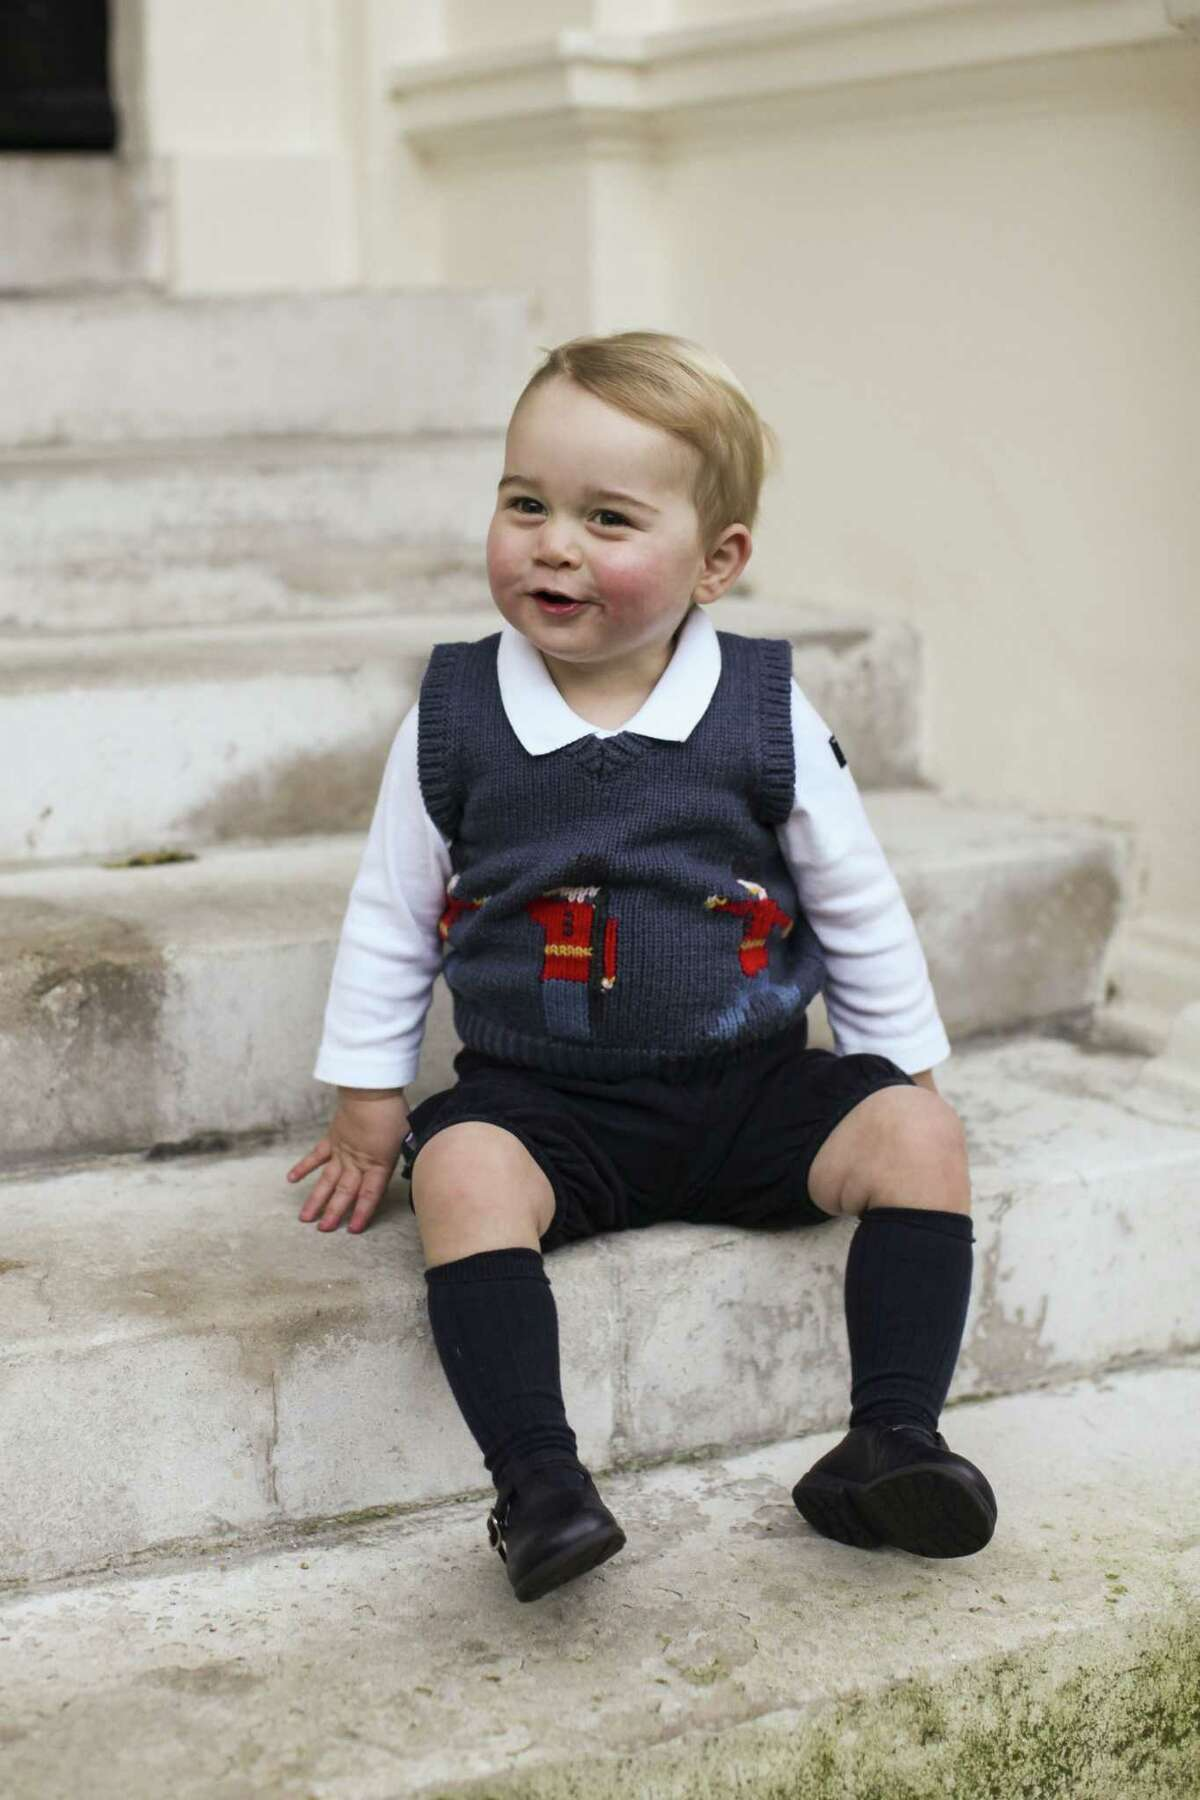 In this photo provided by The Duke and Duchess of Cambridge and taken in late Nov. 2014, Britain's Prince George poses for a photograph in a courtyard at Kensington Palace, London. Great-grandchild to Britain's Queen Elizabeth II, Prince George was born July 22, 2013 and is third in line to the British throne.